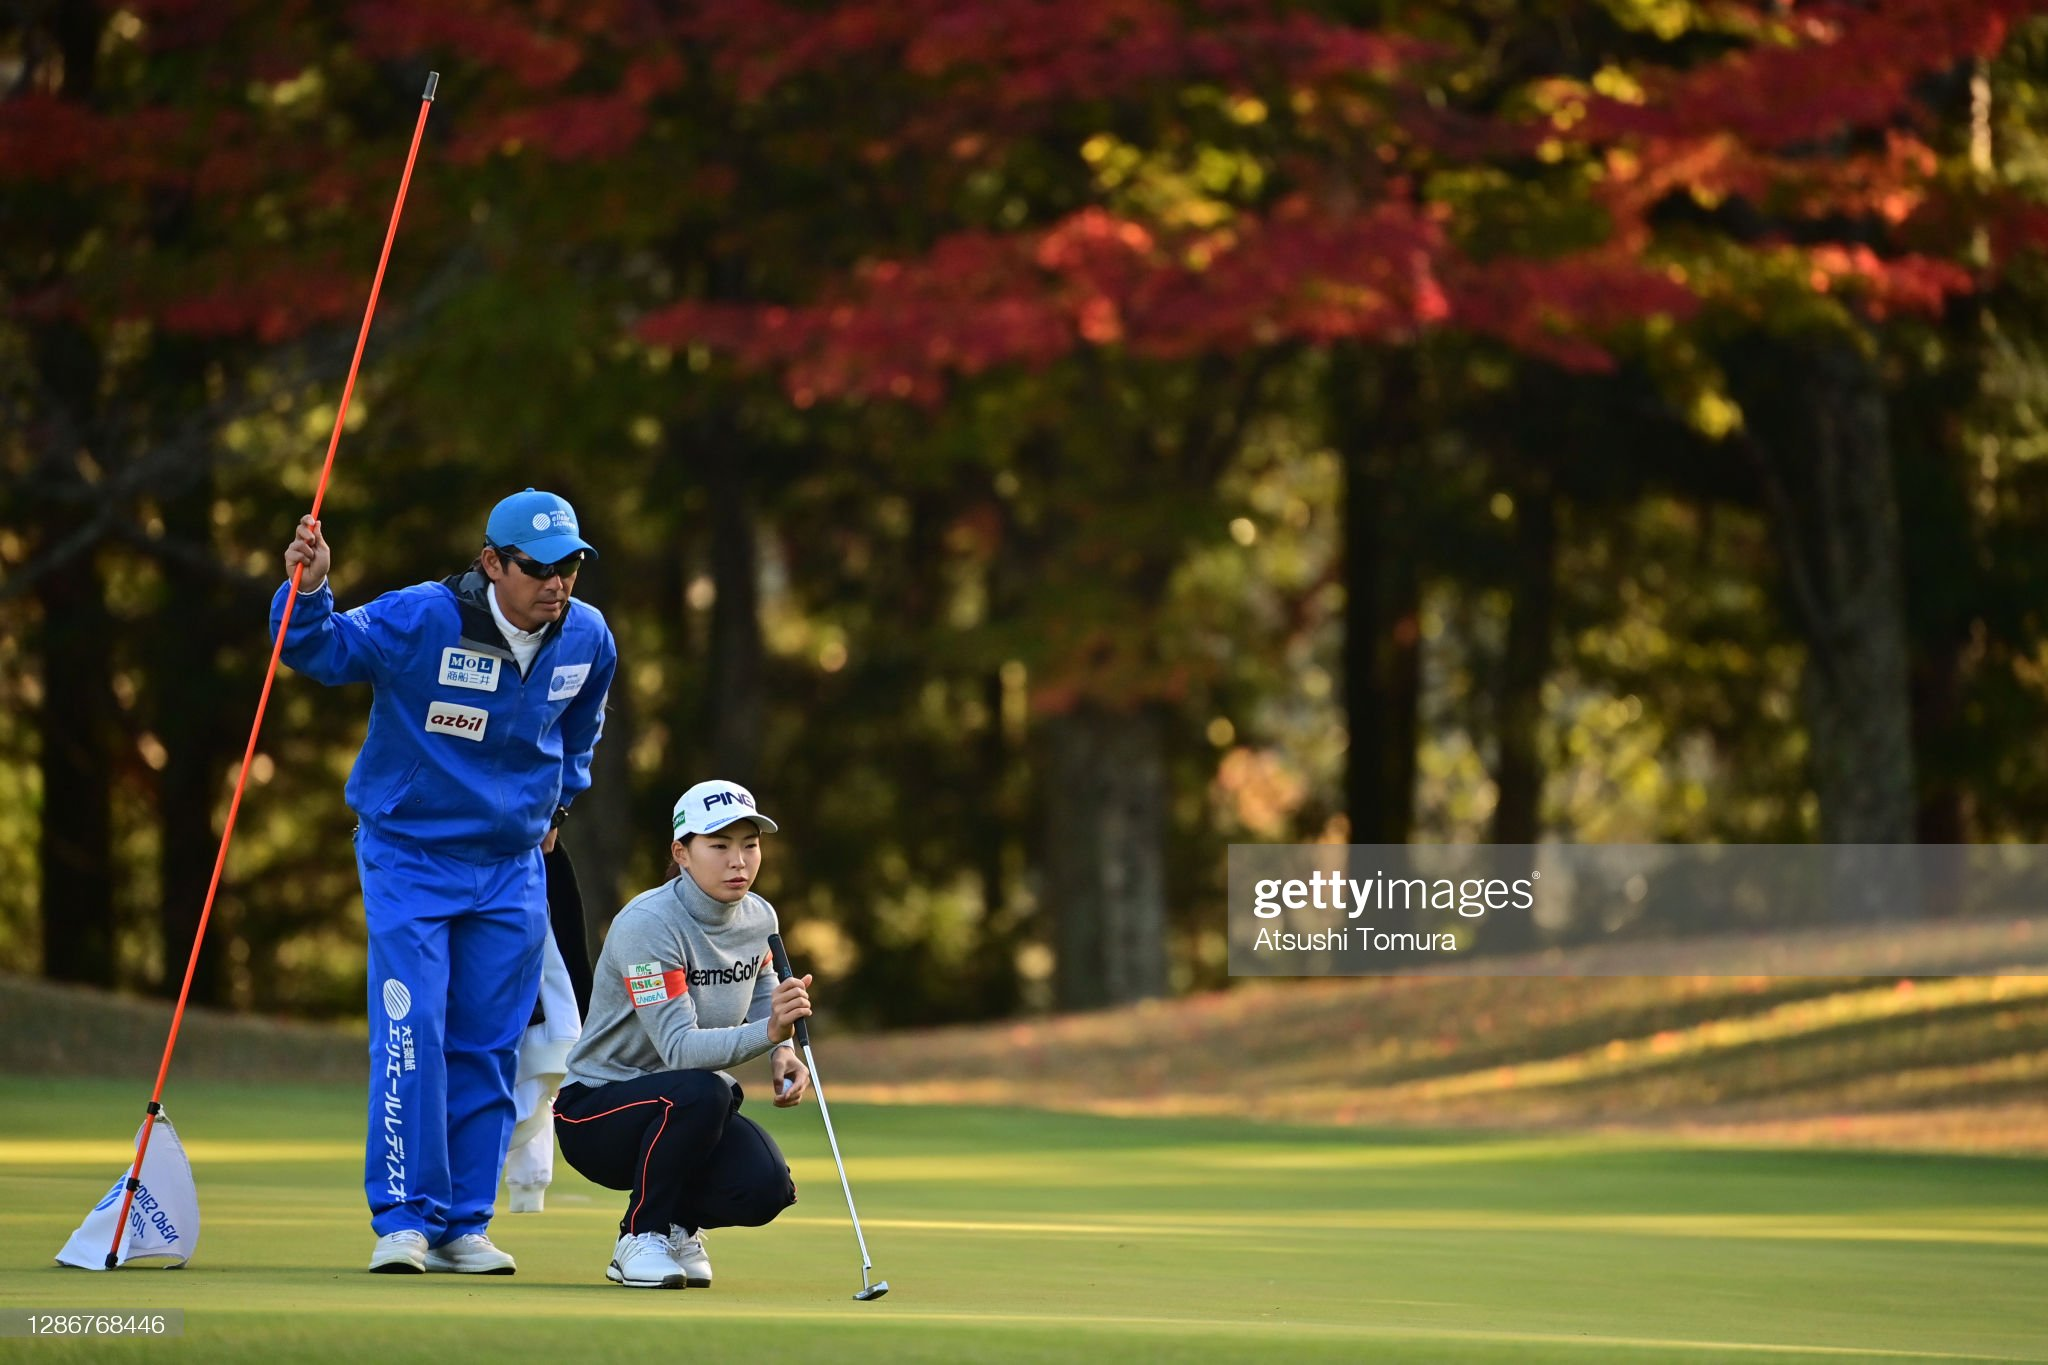 https://media.gettyimages.com/photos/hinako-shibuno-of-japan-lines-up-a-putt-on-the-1st-green-during-the-picture-id1286768446?s=2048x2048